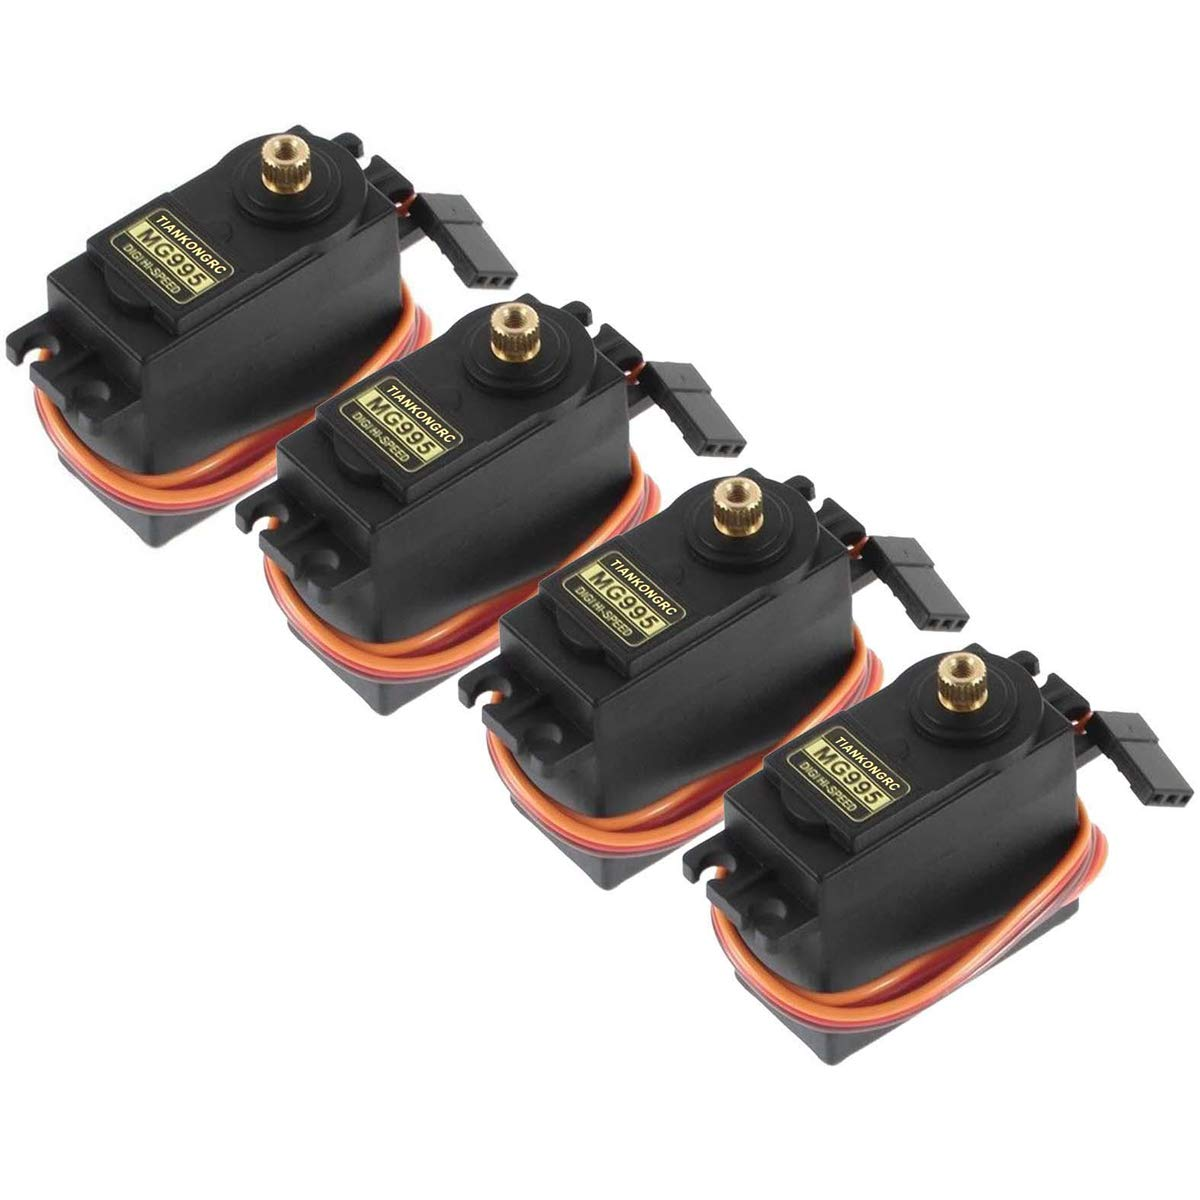 4PCS Servo Motor MG995 Control Angle180 Metal Gear Servo 20KG Digital High Speed Torque Servo Motor for Smart Car Robot Boat RC Helicopter